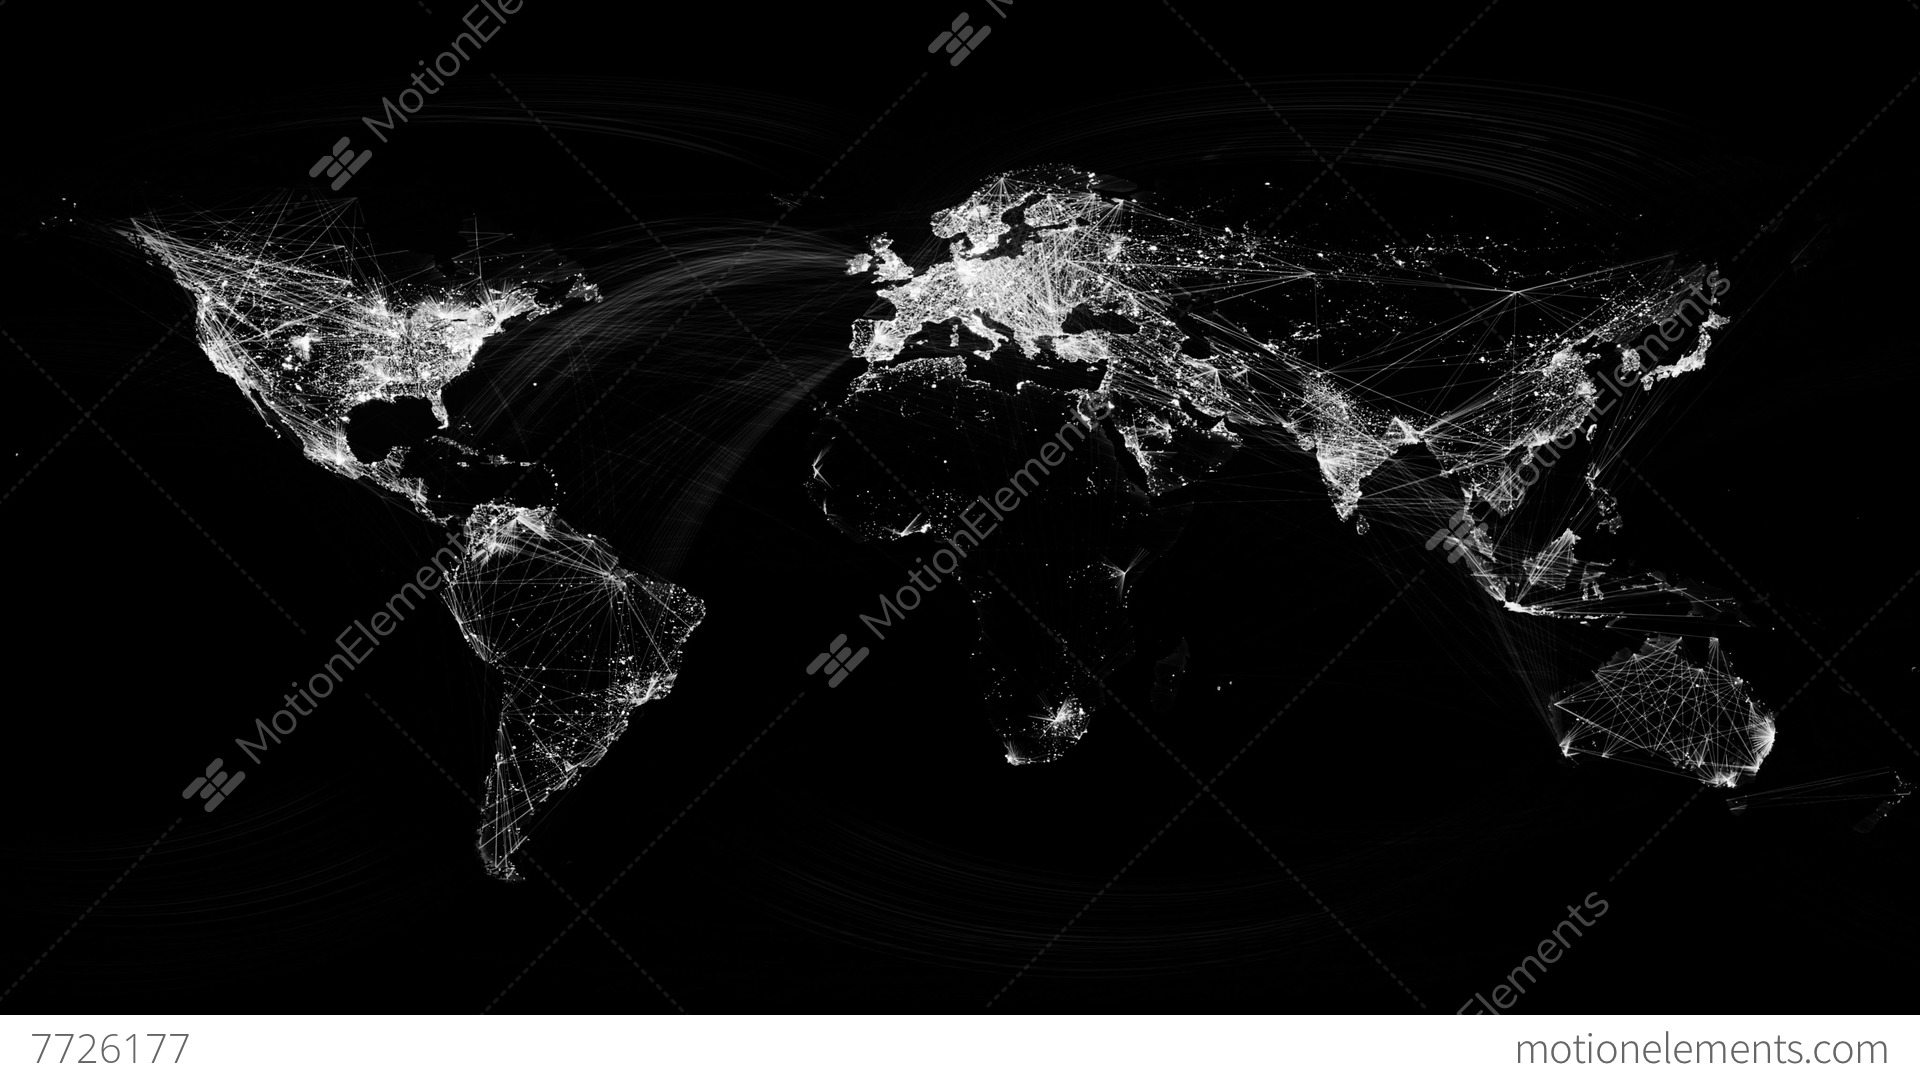 Network lines lighting up world map 4k black and white version network lines lighting up world map 4k black and white stock video gumiabroncs